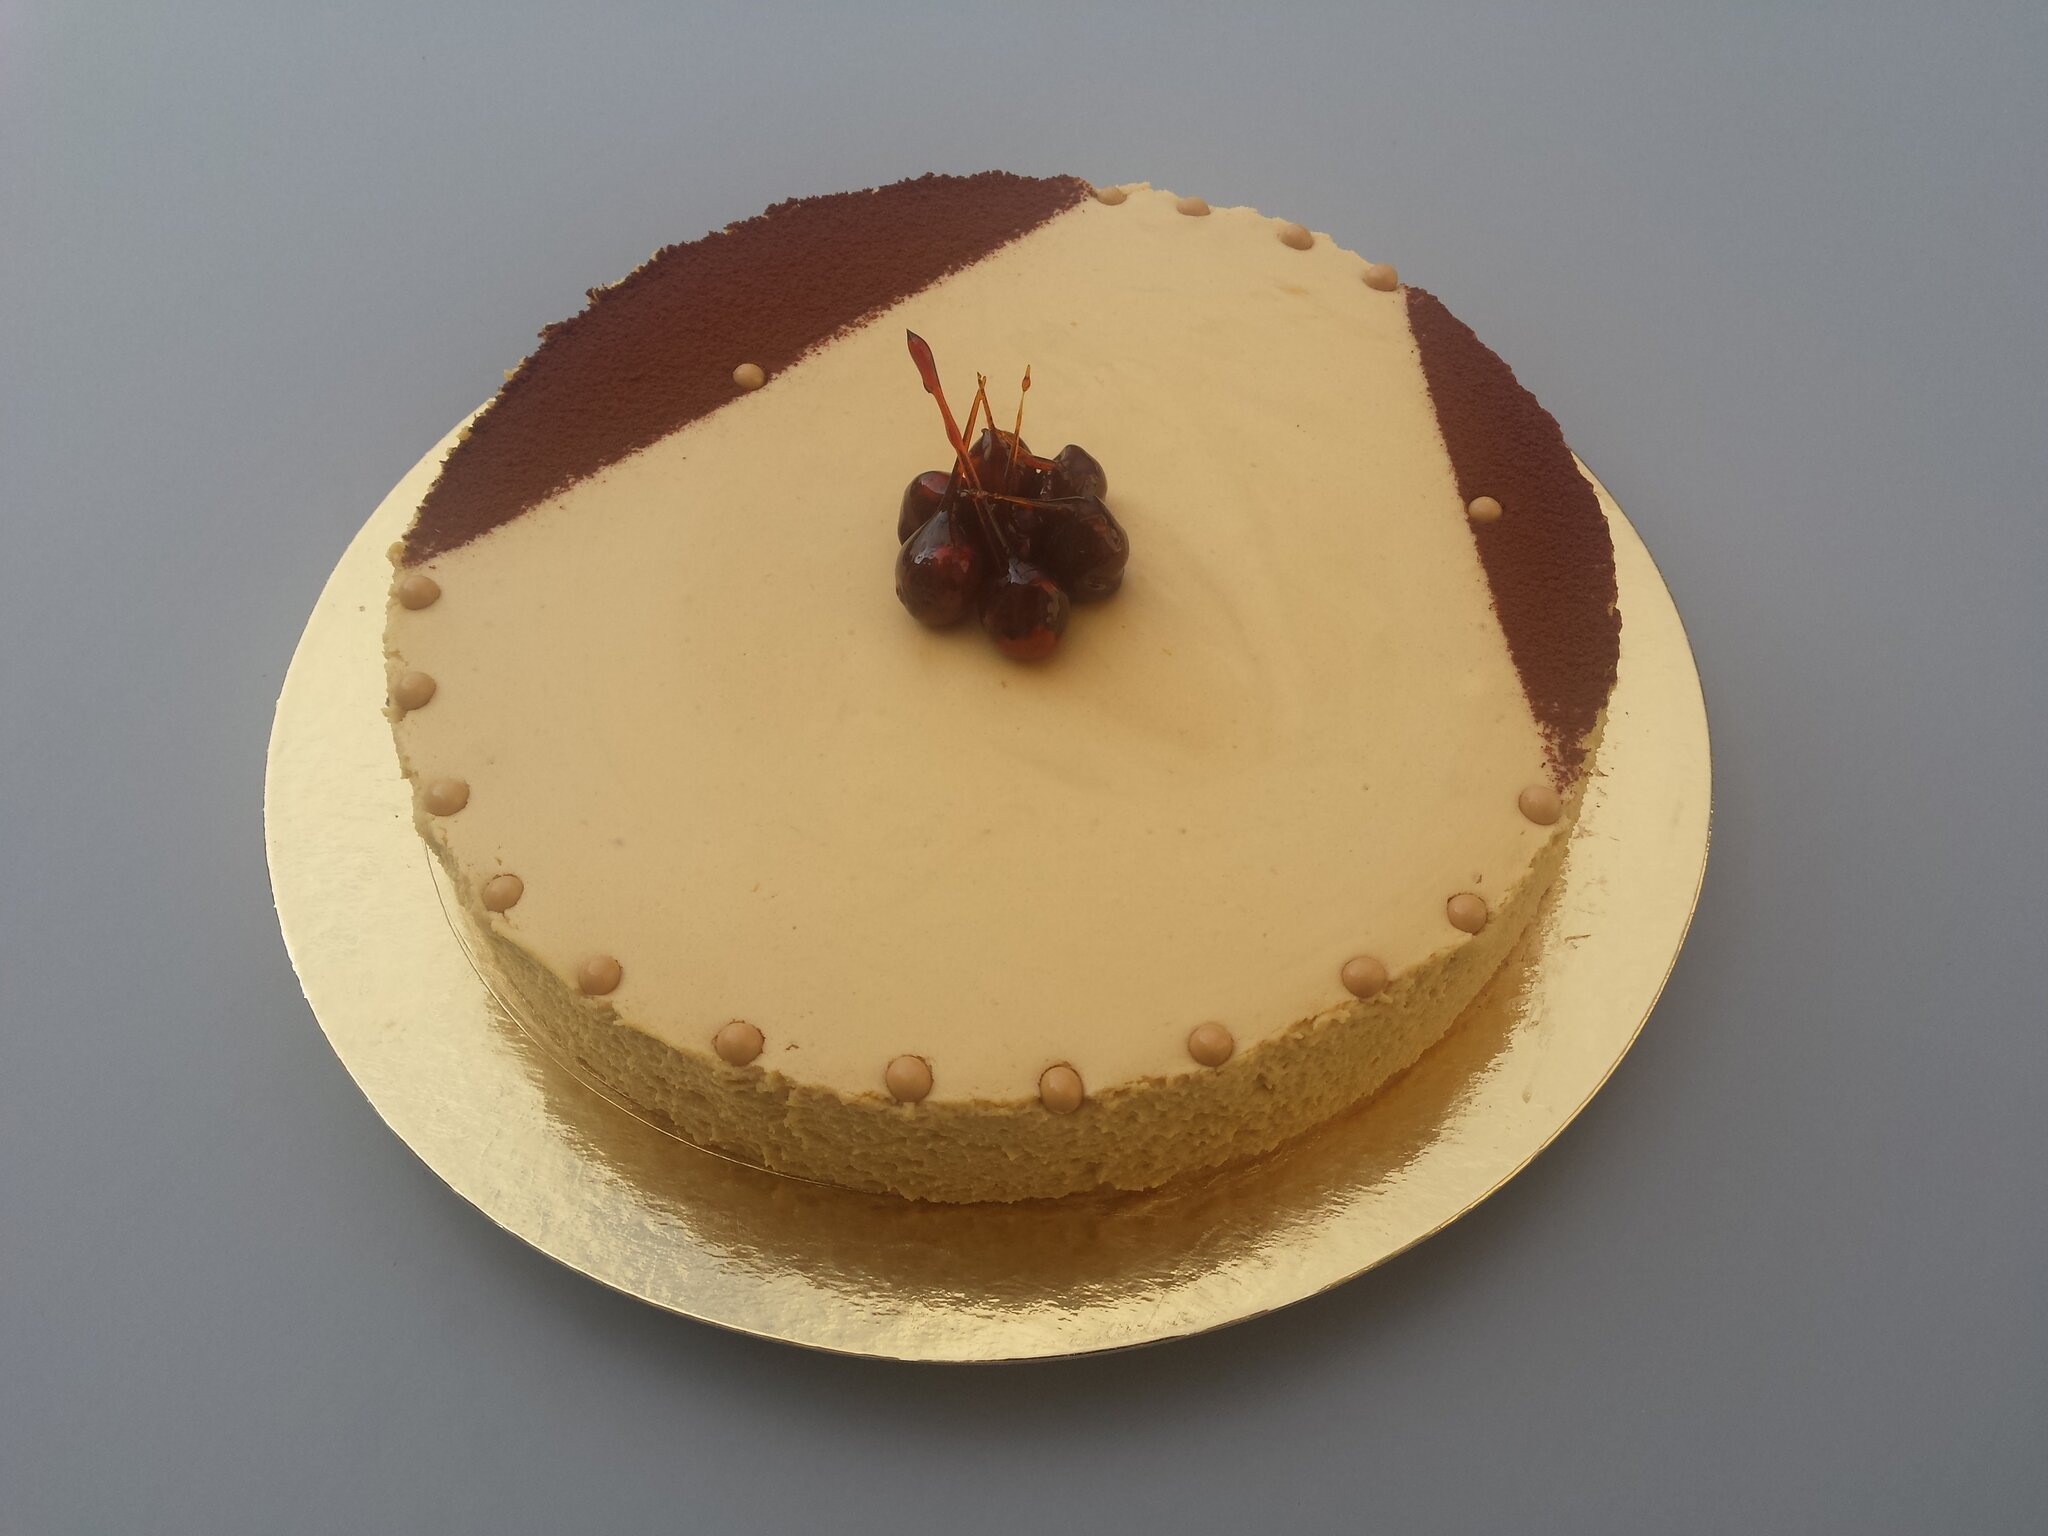 Entremets dulcey